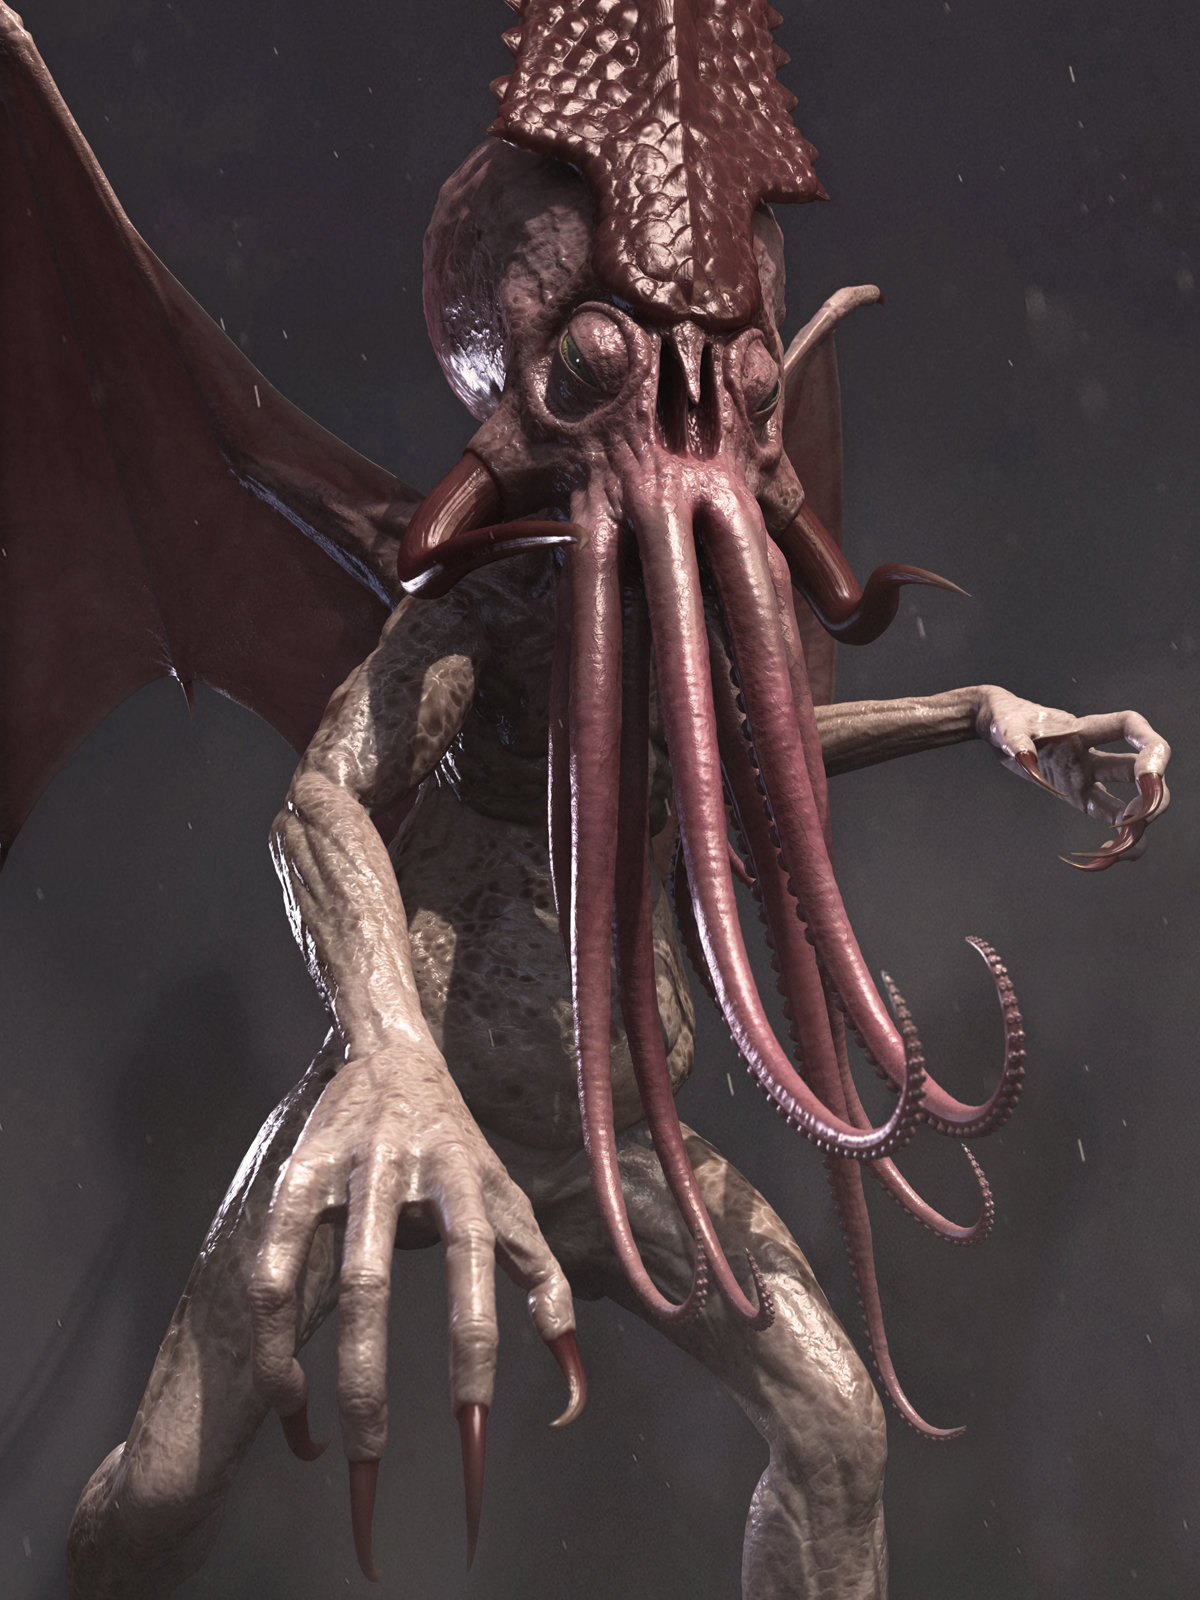 Toby hynes cthulhu rising vray 02 final sml